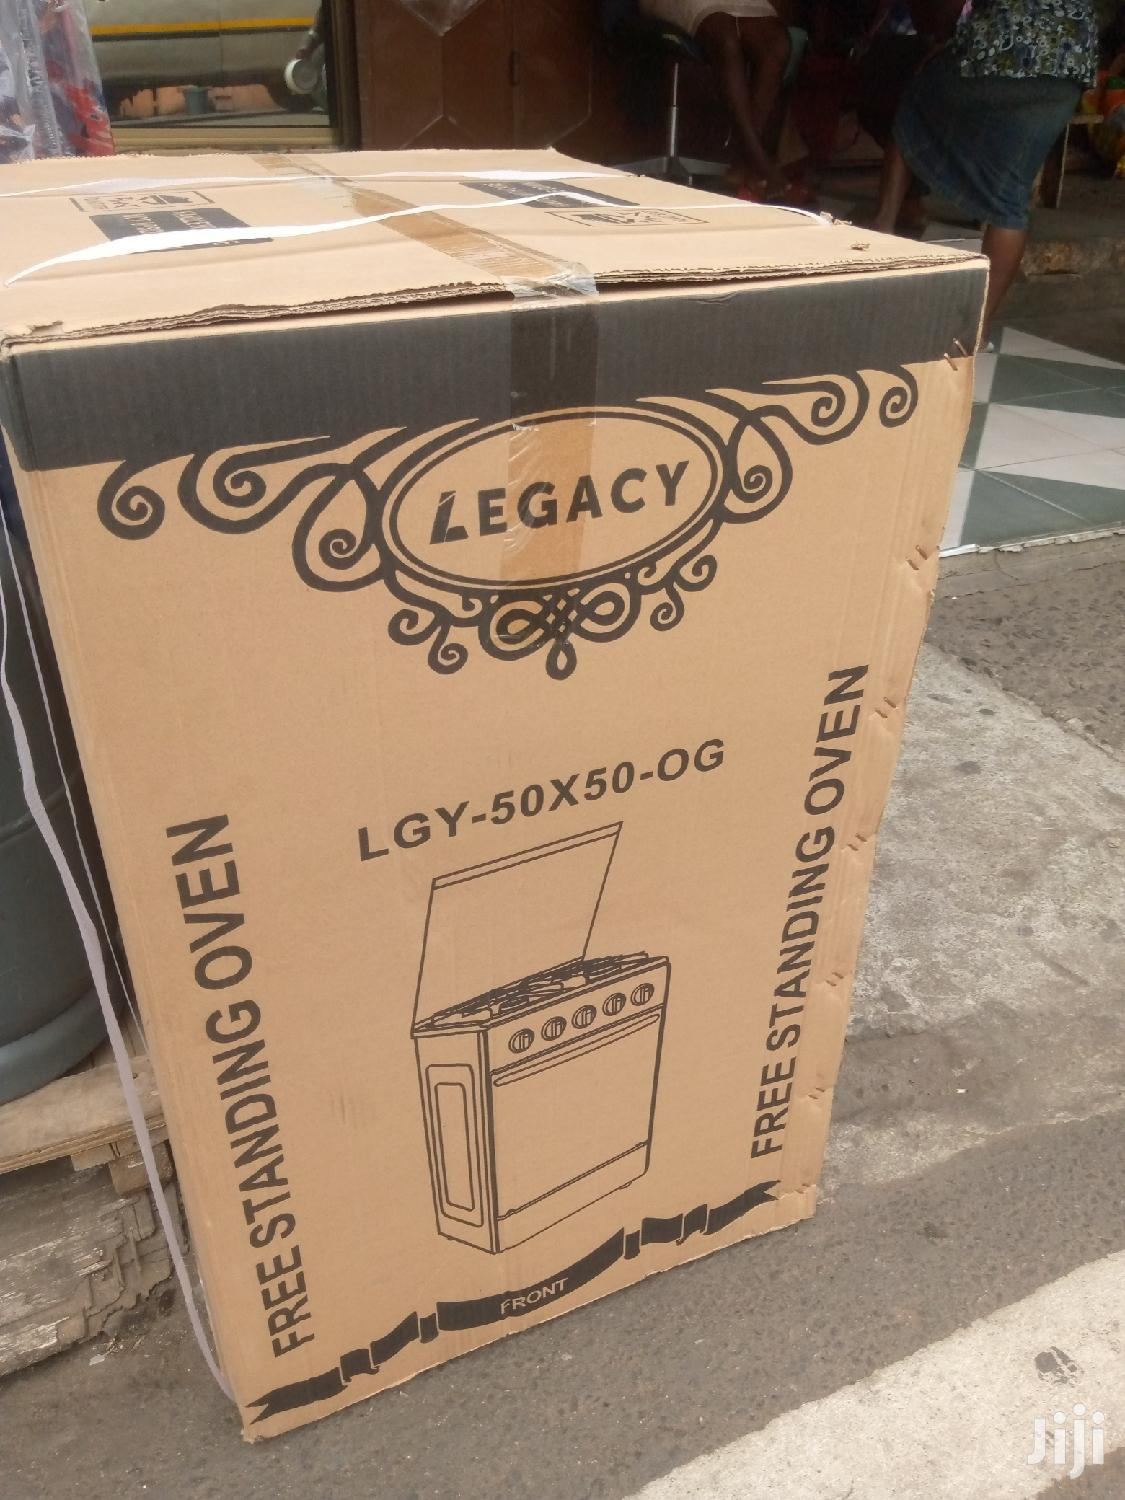 Gas Cooker Oven(Legacy 50x50) | Kitchen Appliances for sale in Accra Metropolitan, Greater Accra, Ghana